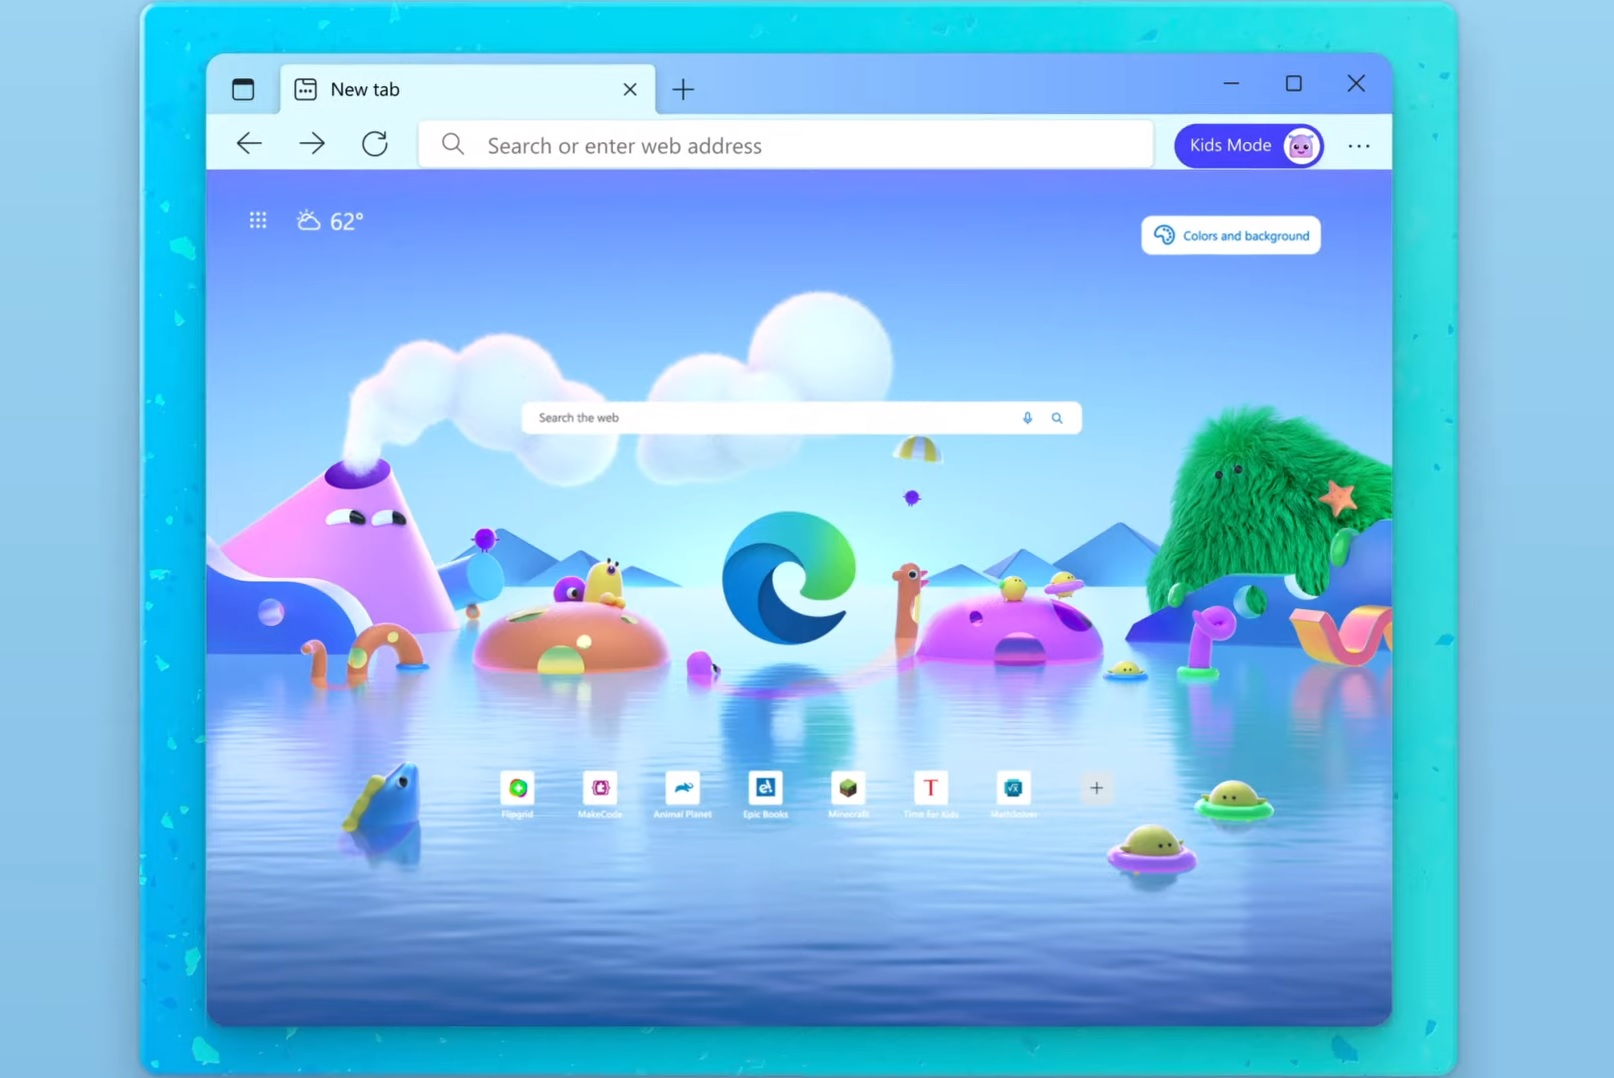 Microsoft Edge adds excellent Kids Mode for safer web browsing, which its competitors should replicate / Digital Information World